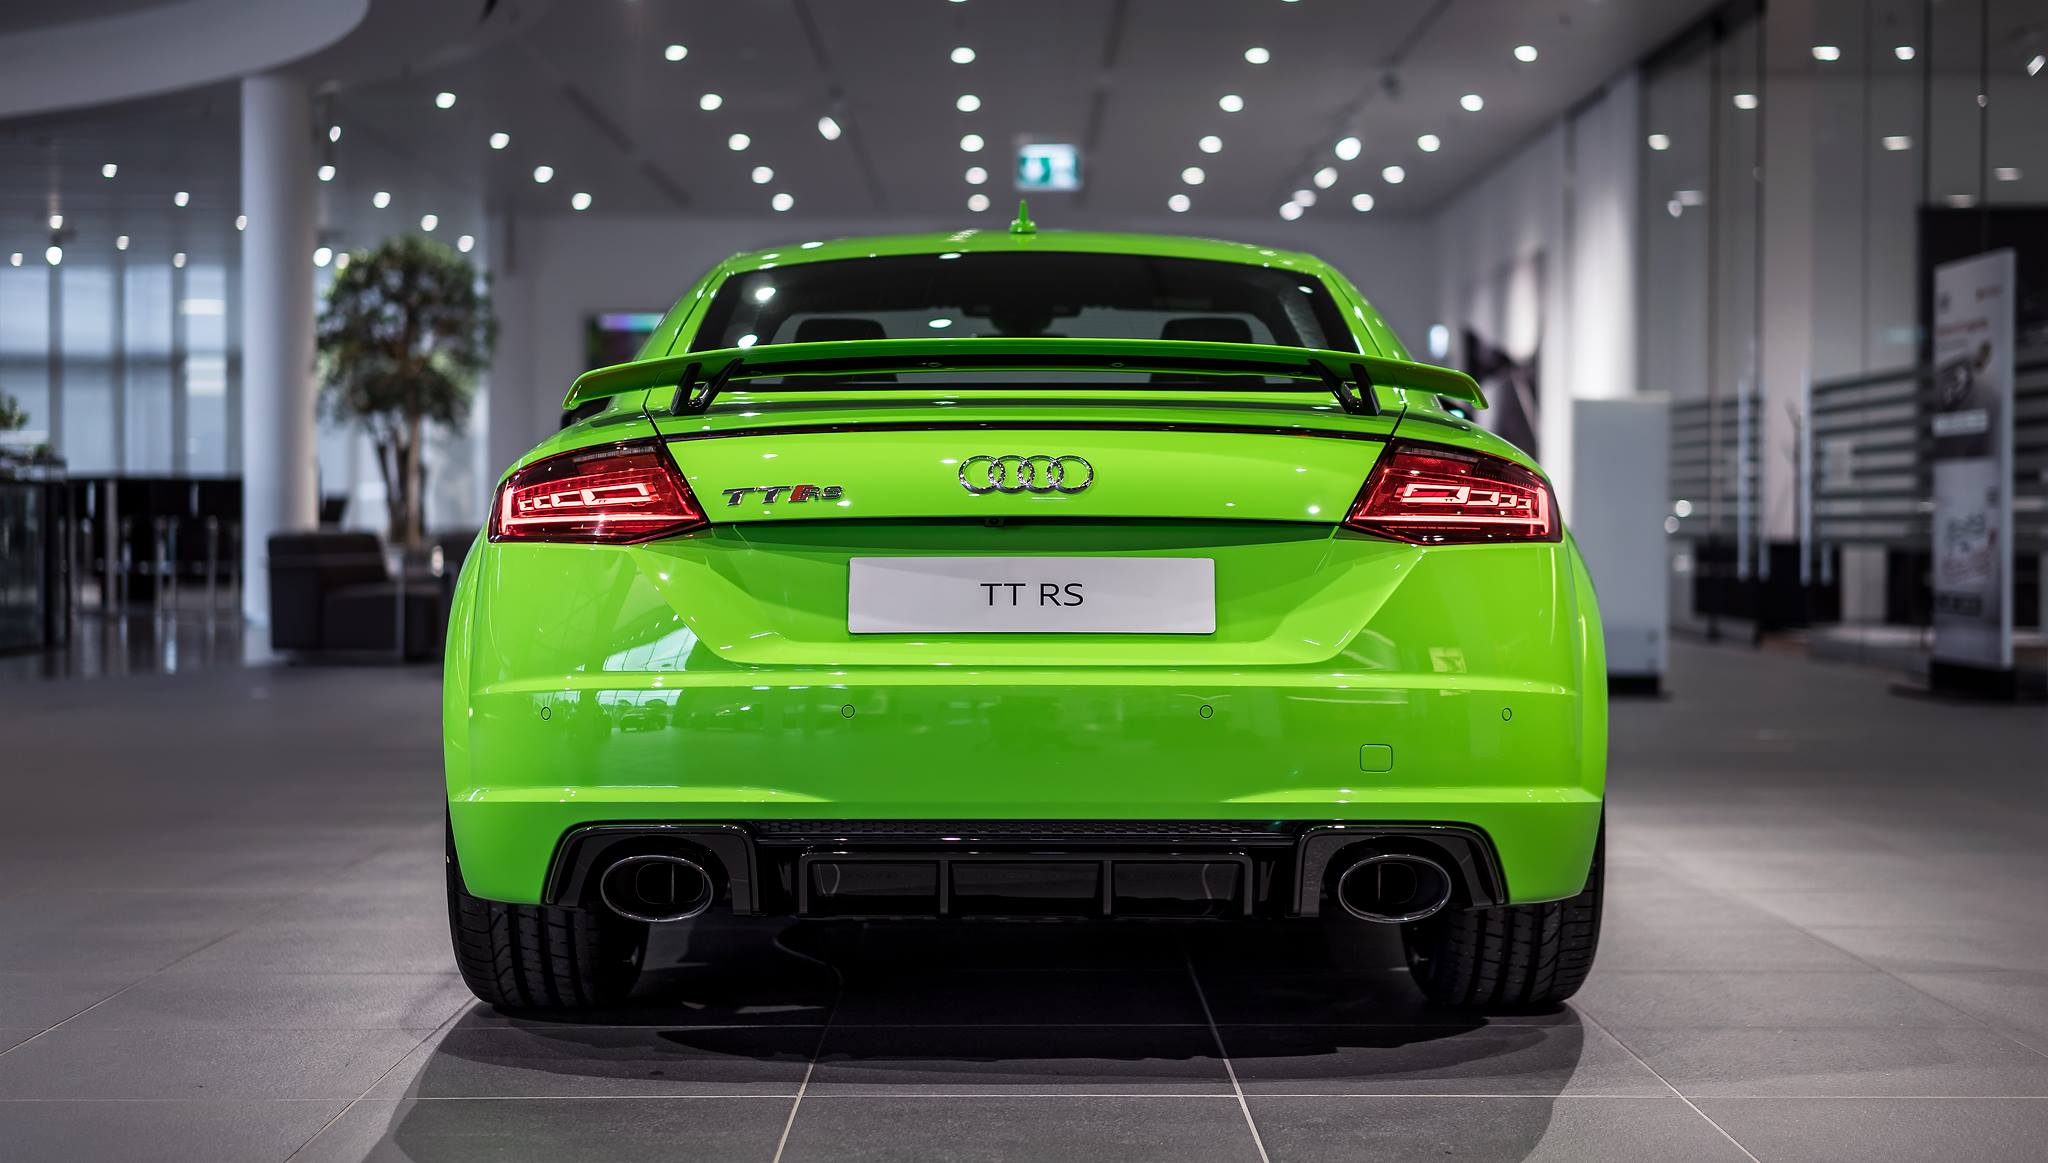 lime green 2017 audi tt rs at audi forum neckarsulm gtspirit. Black Bedroom Furniture Sets. Home Design Ideas